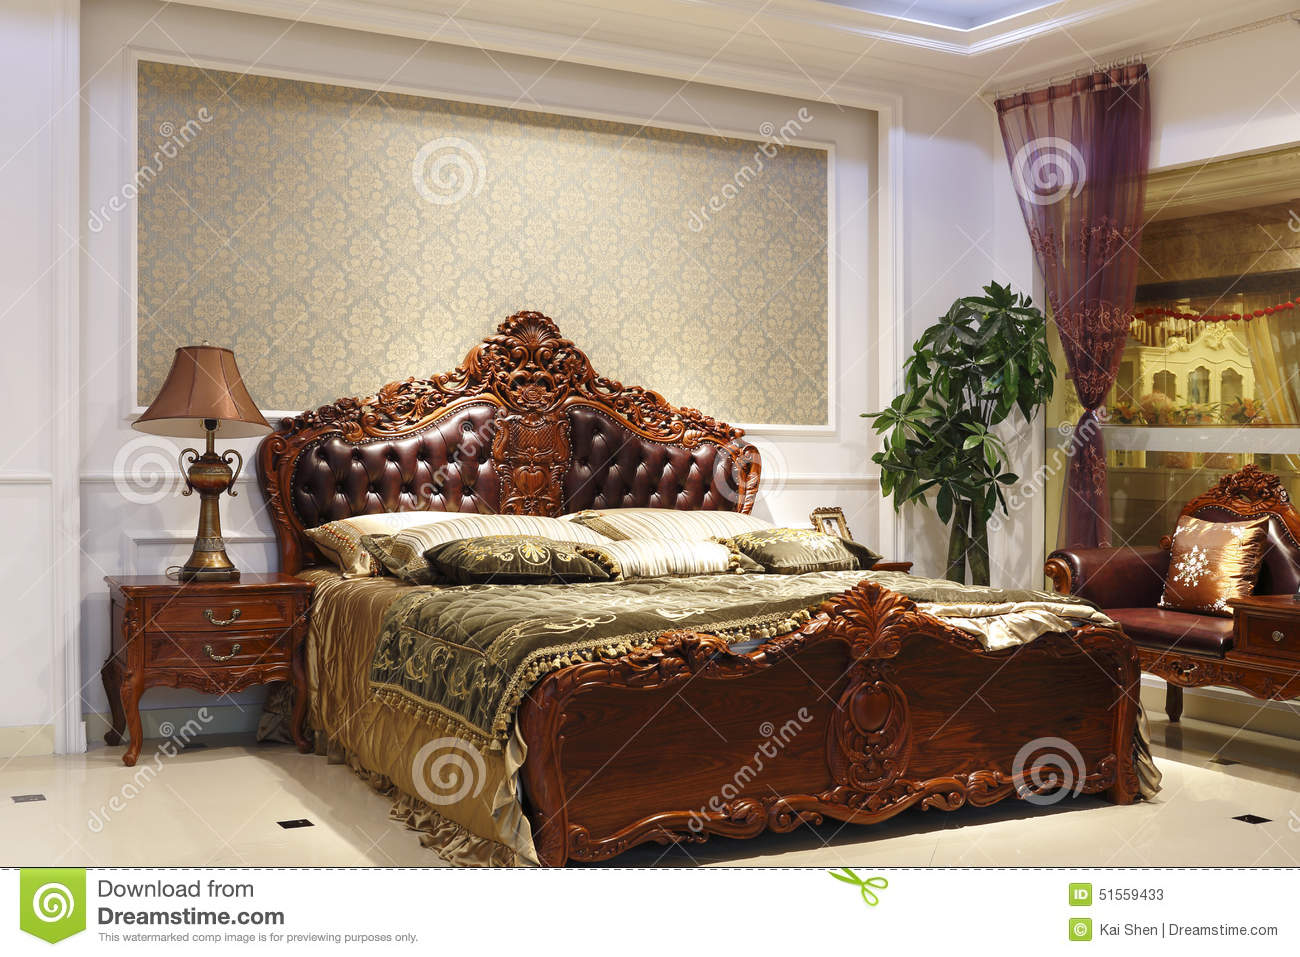 The grandeur of the bedroom stock photo image 51559433 for Bed quilting designs